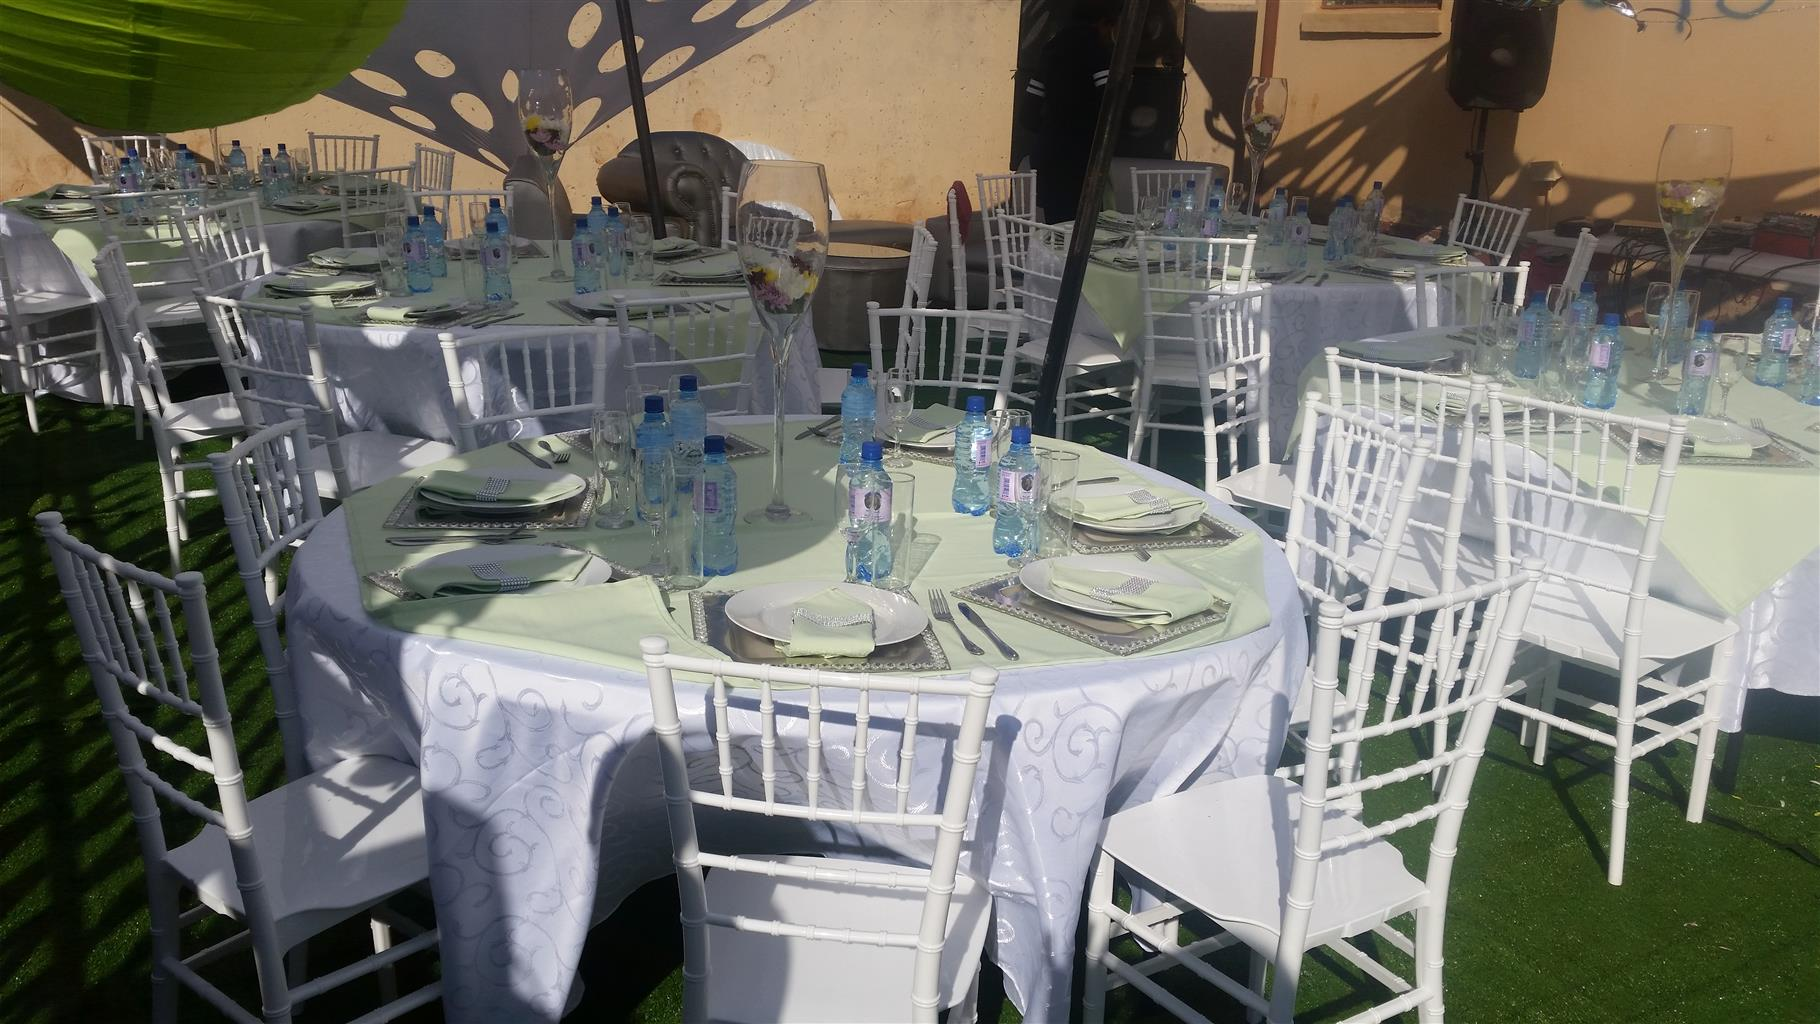 Tiffany chairs, tables and couches for hire R30/chair